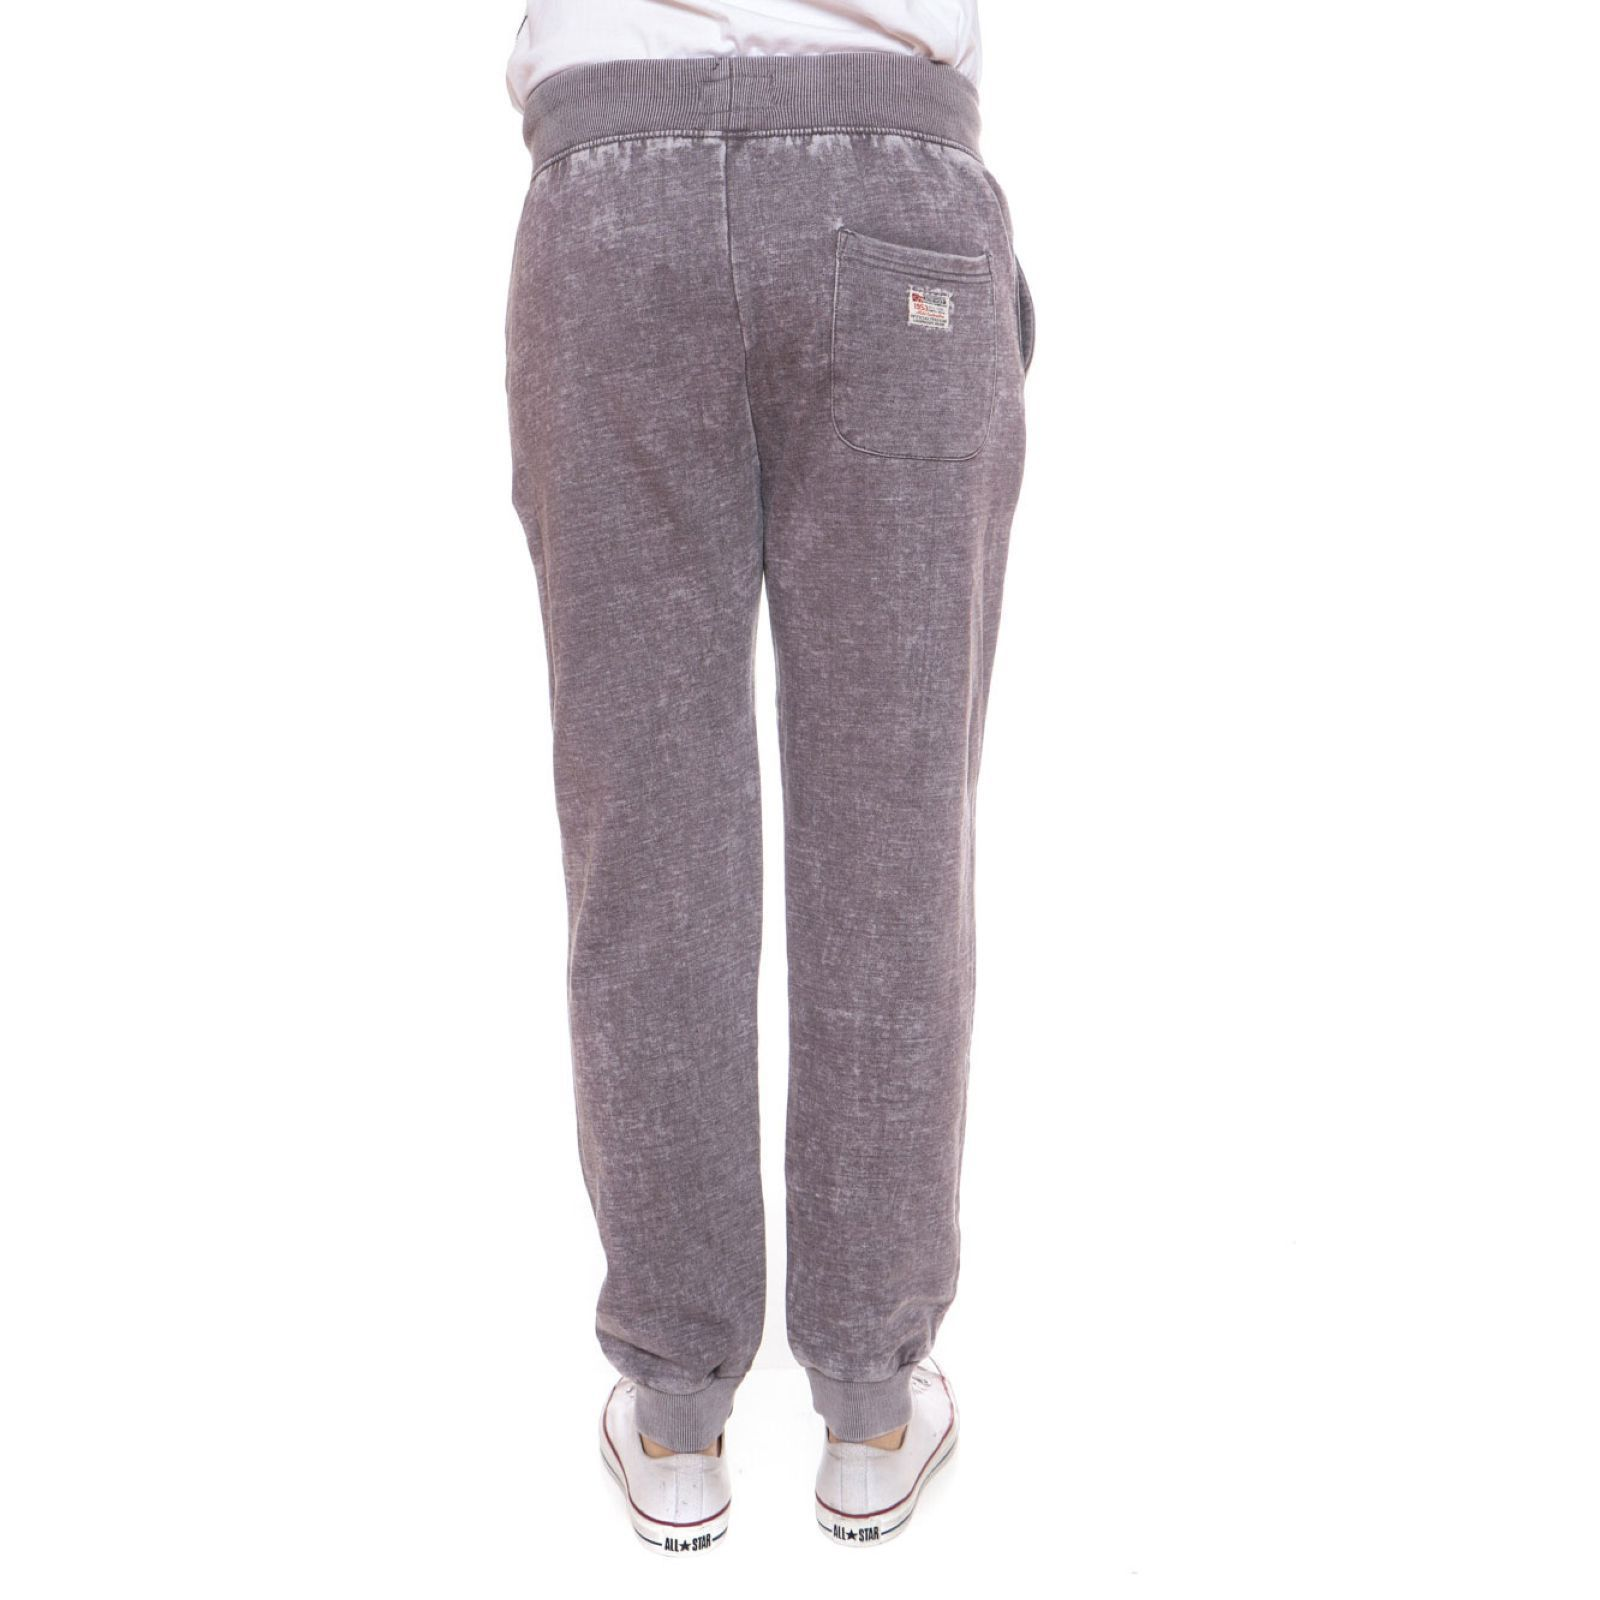 MulloutPantalon Geographical Norway Clair Homme V Jogging Gris b7yfY6gv